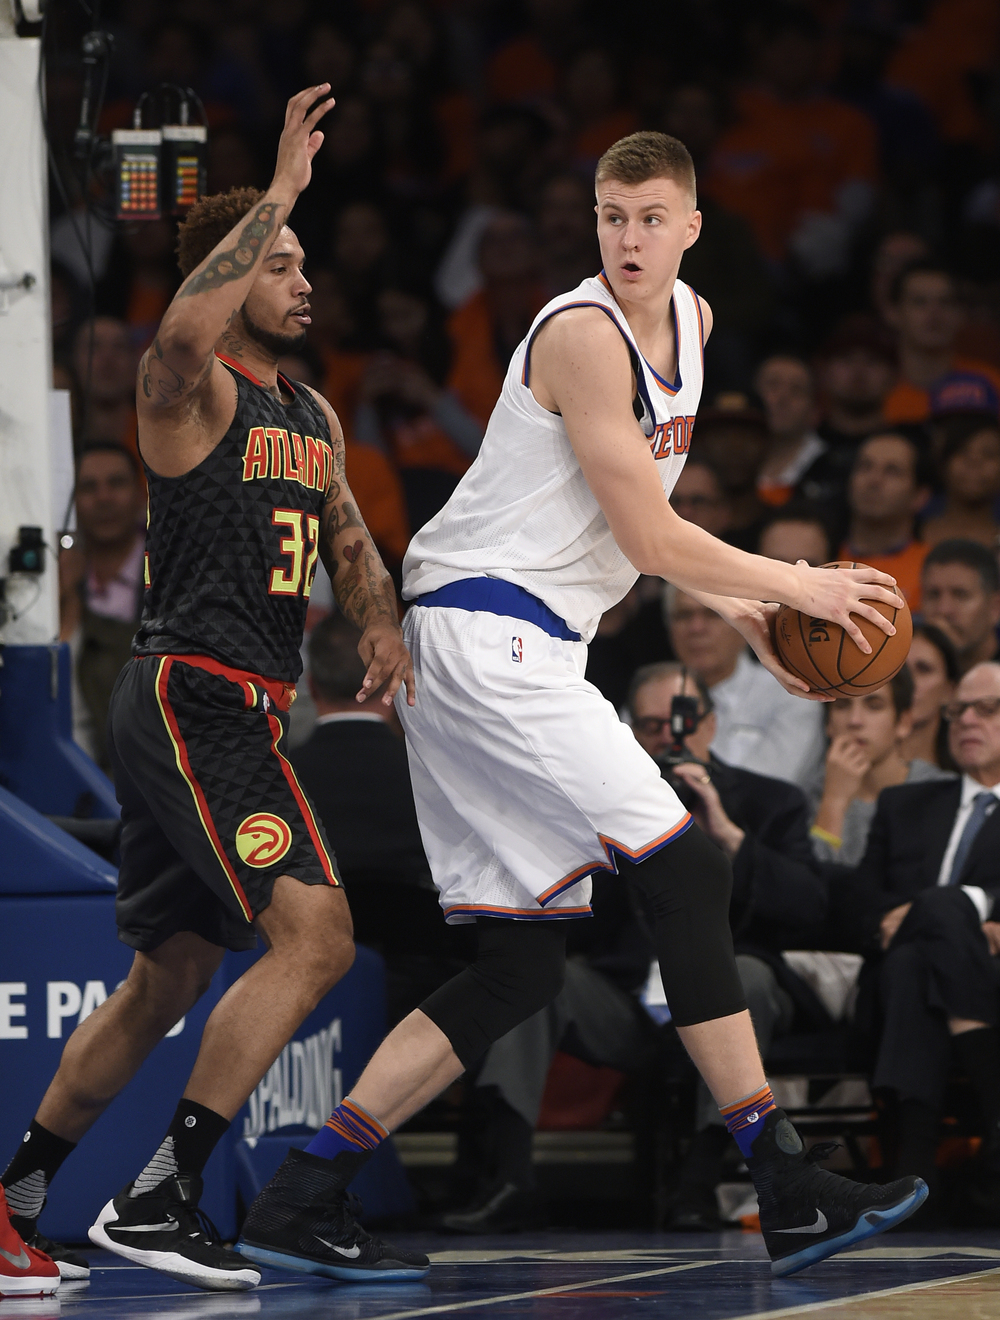 New York Knicks forward Kristaps Porzingis (6) looks to pass the ball around Atlanta Hawks forward Mike Scott (32) during the second half of an NBA basketball game on Thursday, Oct. 29, 2015, in New York. The Hawks won 112-101. (Kathy Kmonicek/AP)